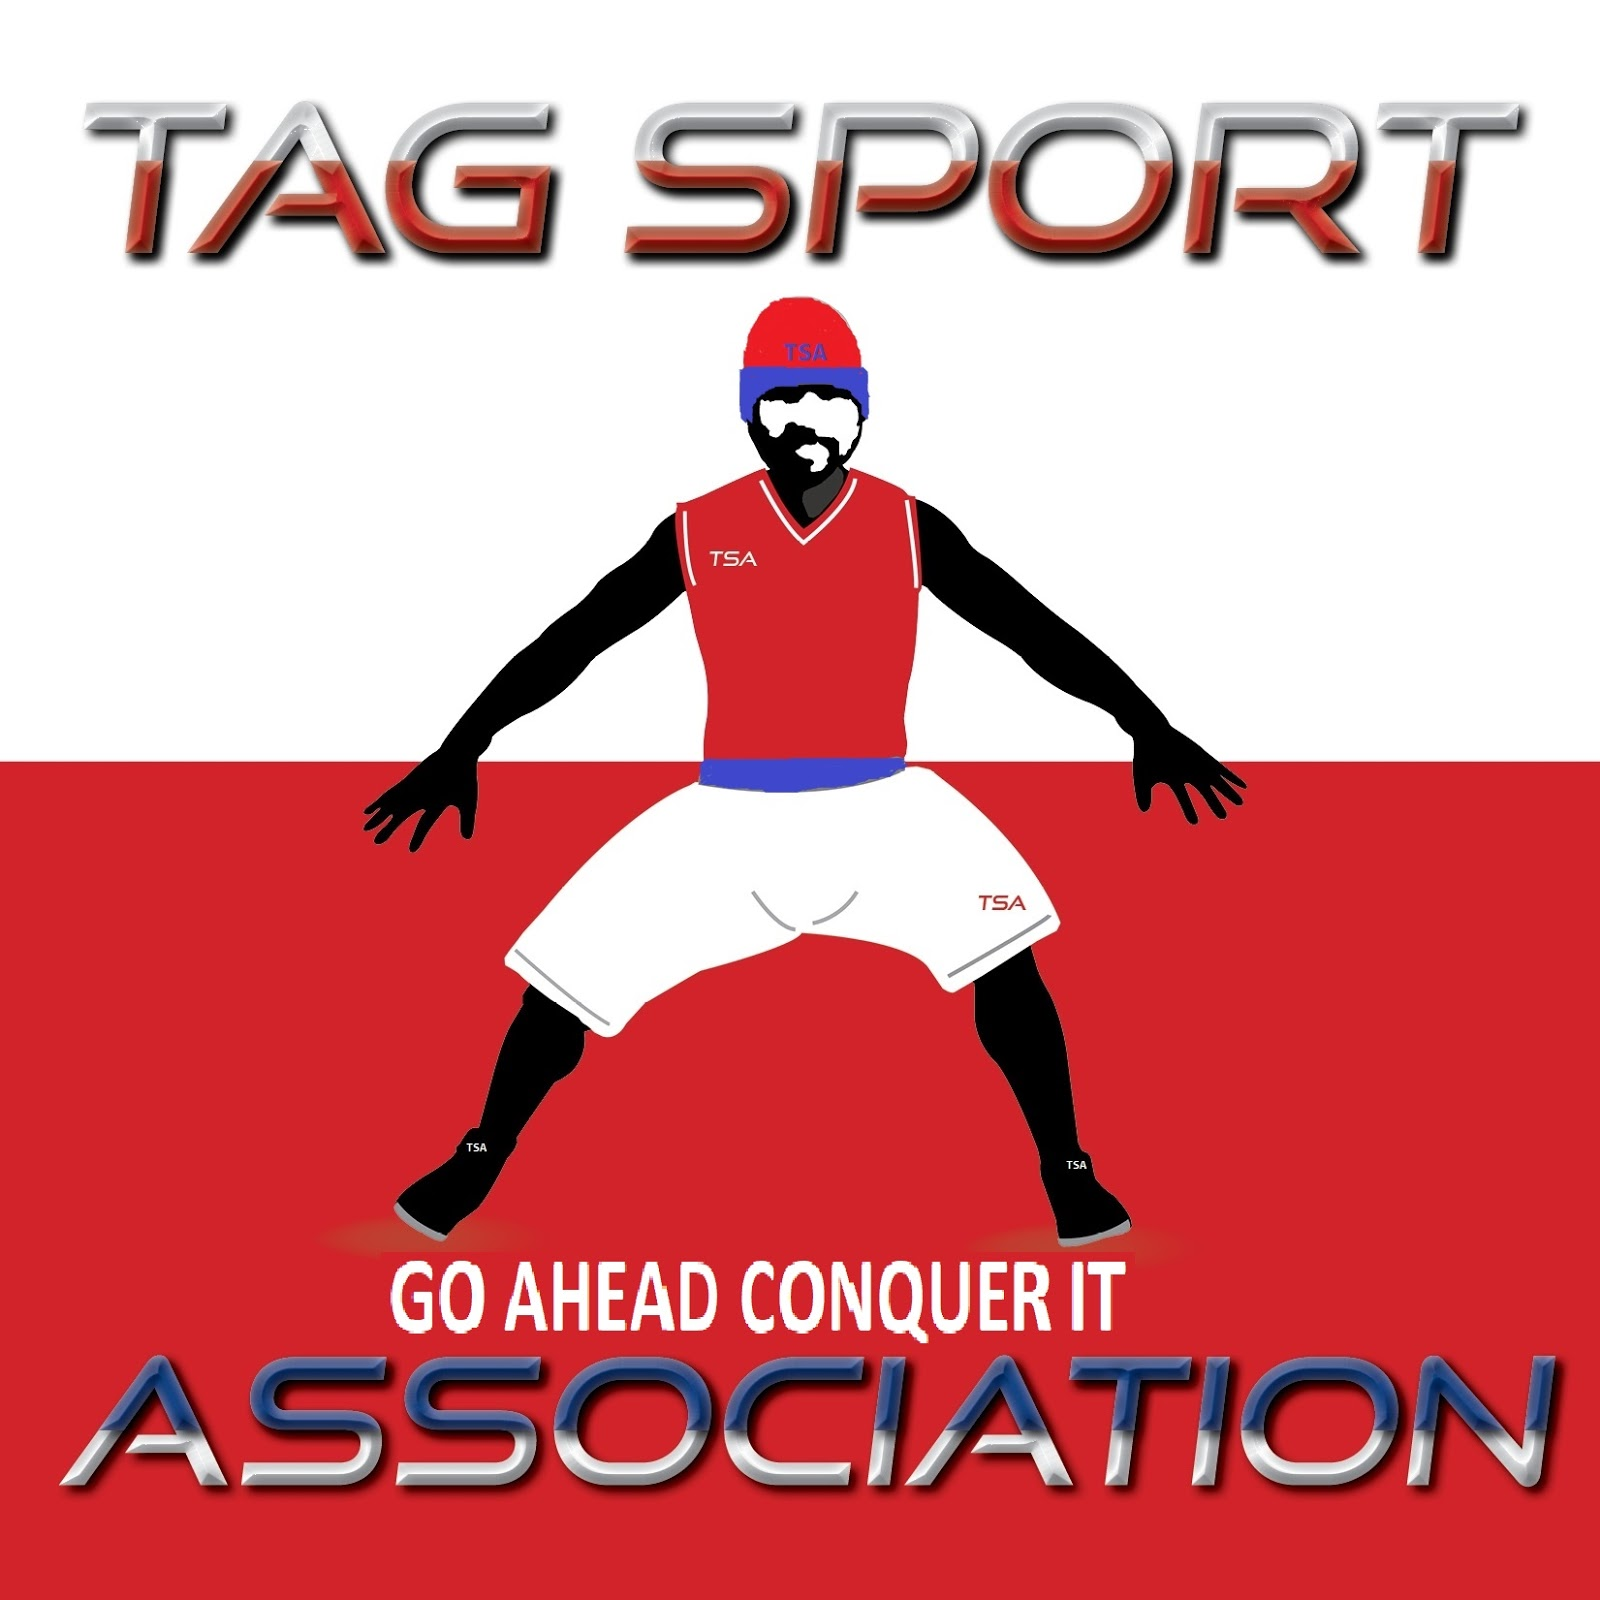 TAGSPORT ASSOCIATION GO AHEAD AND CONQUER IT